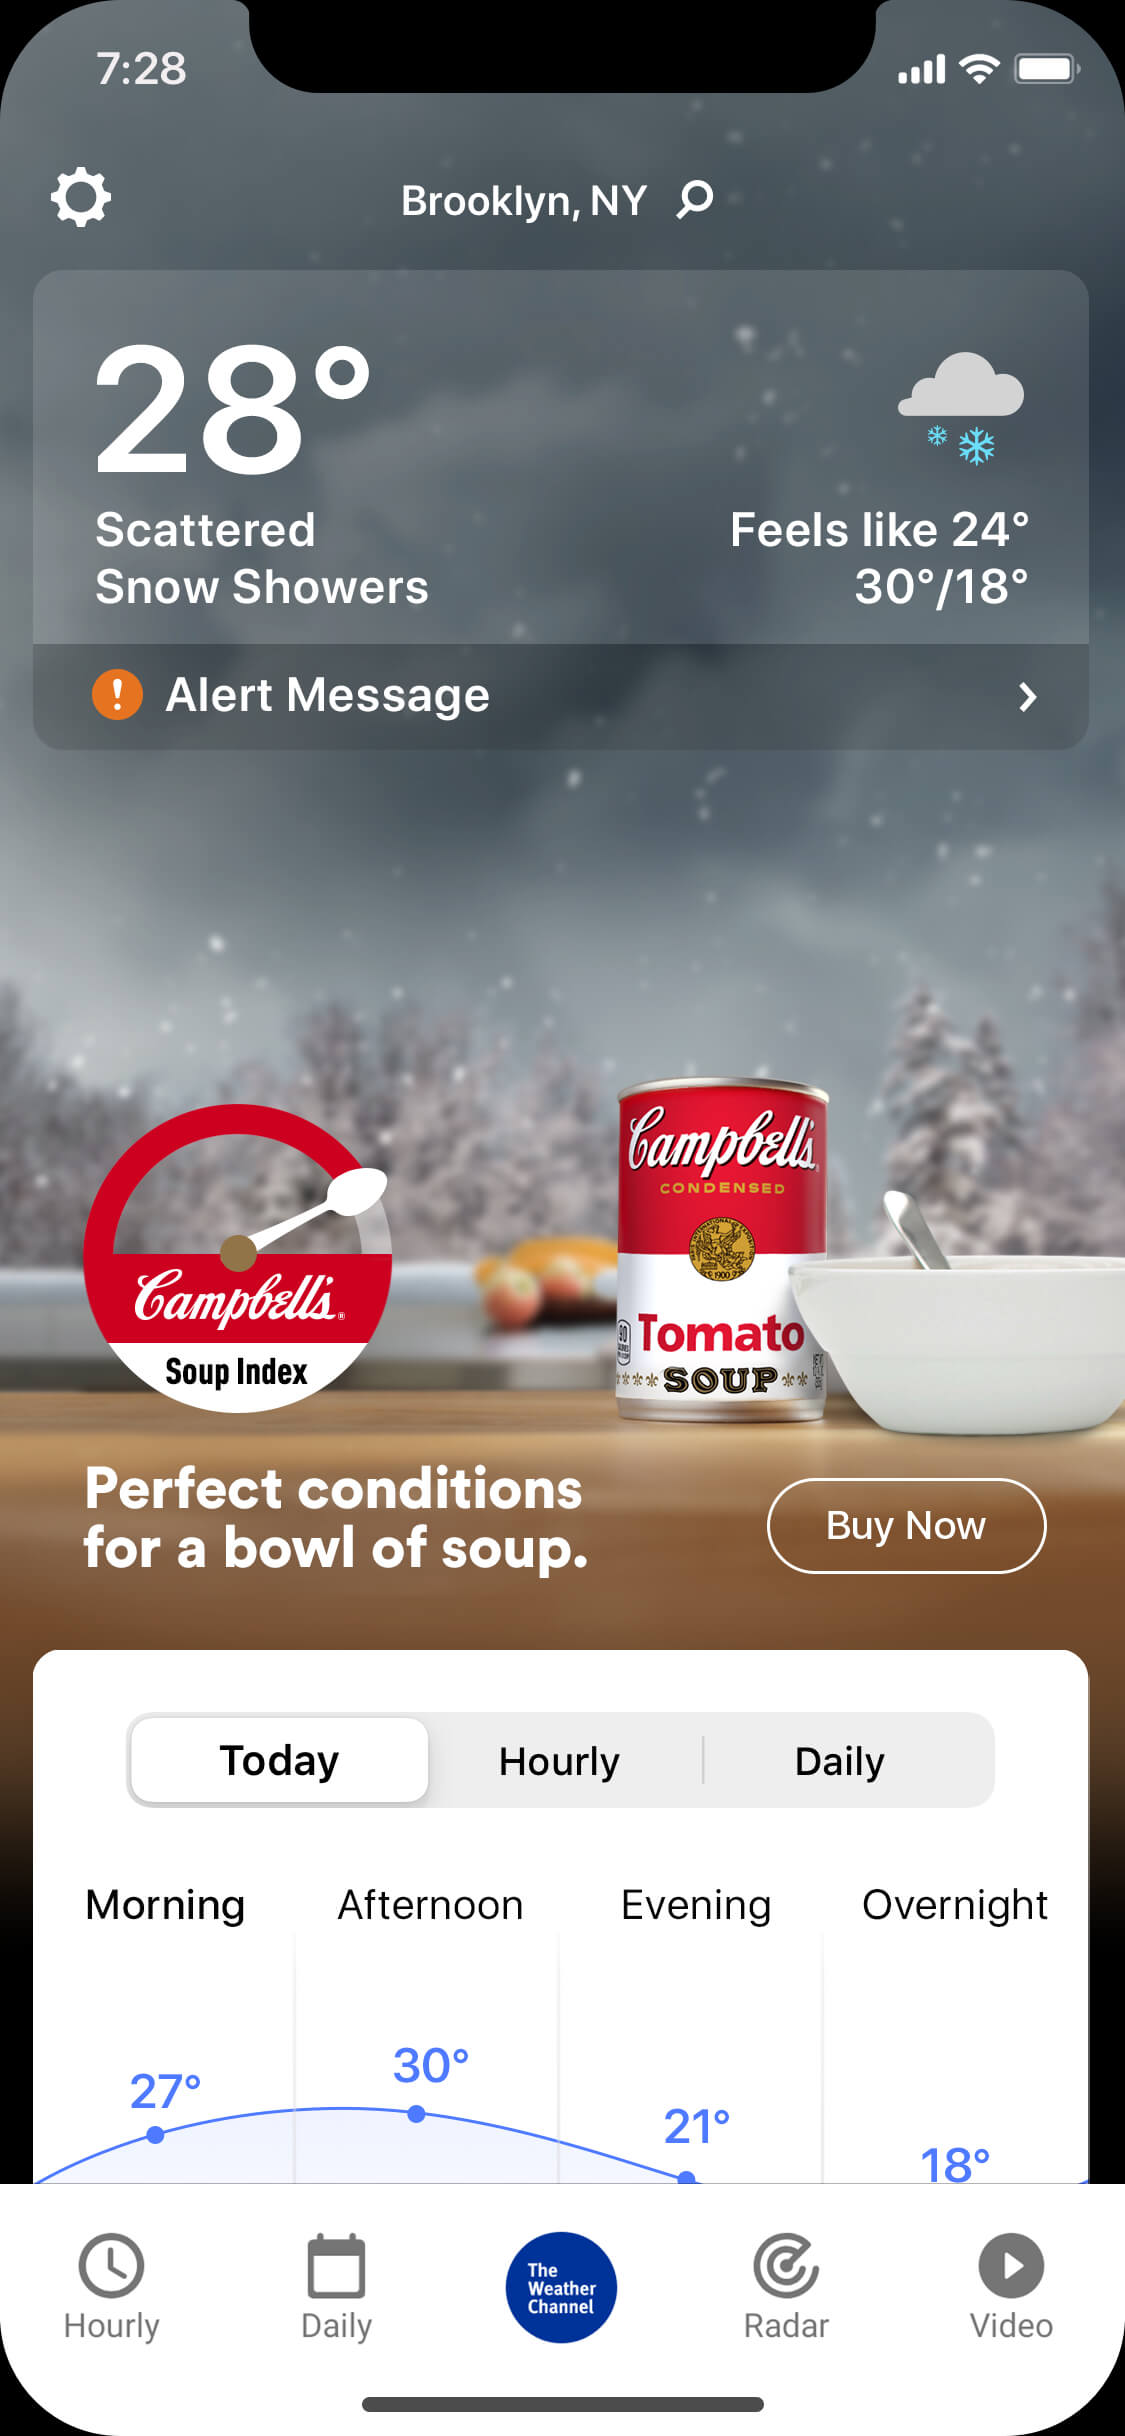 campbells-soup-index-maim_wintry-day